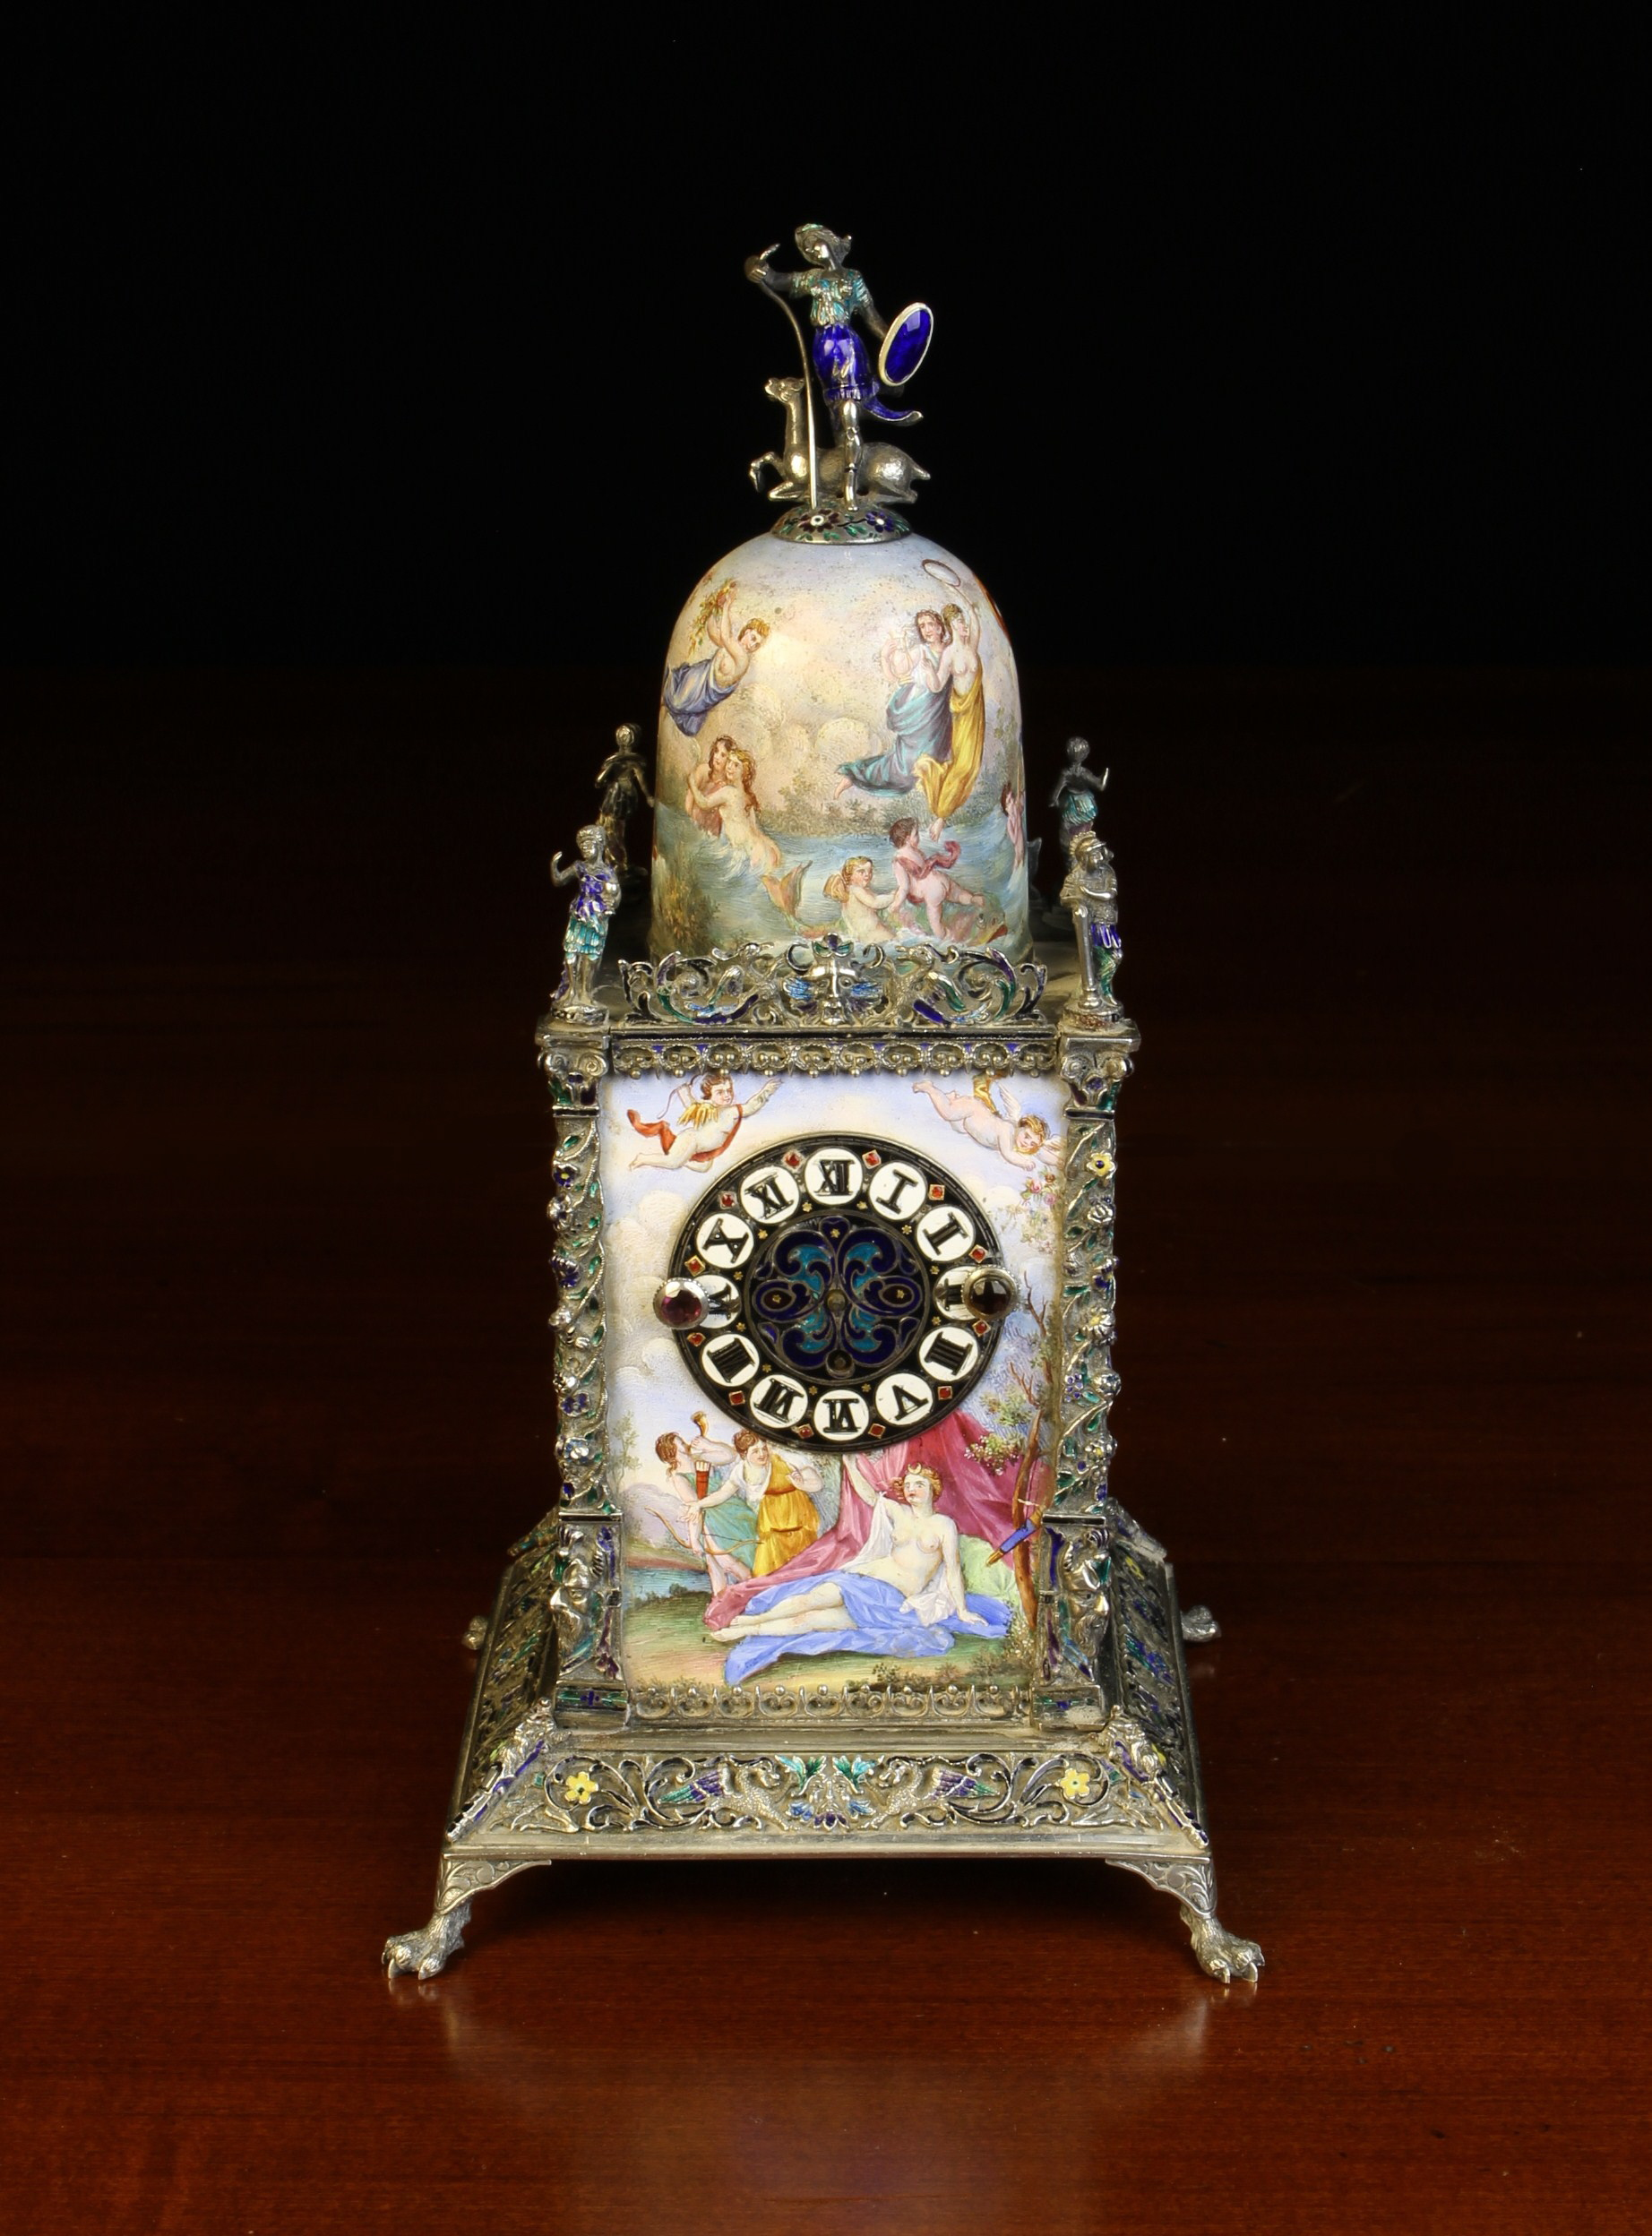 A Small & Highly Decorative Vienna Enamel Table Clock.